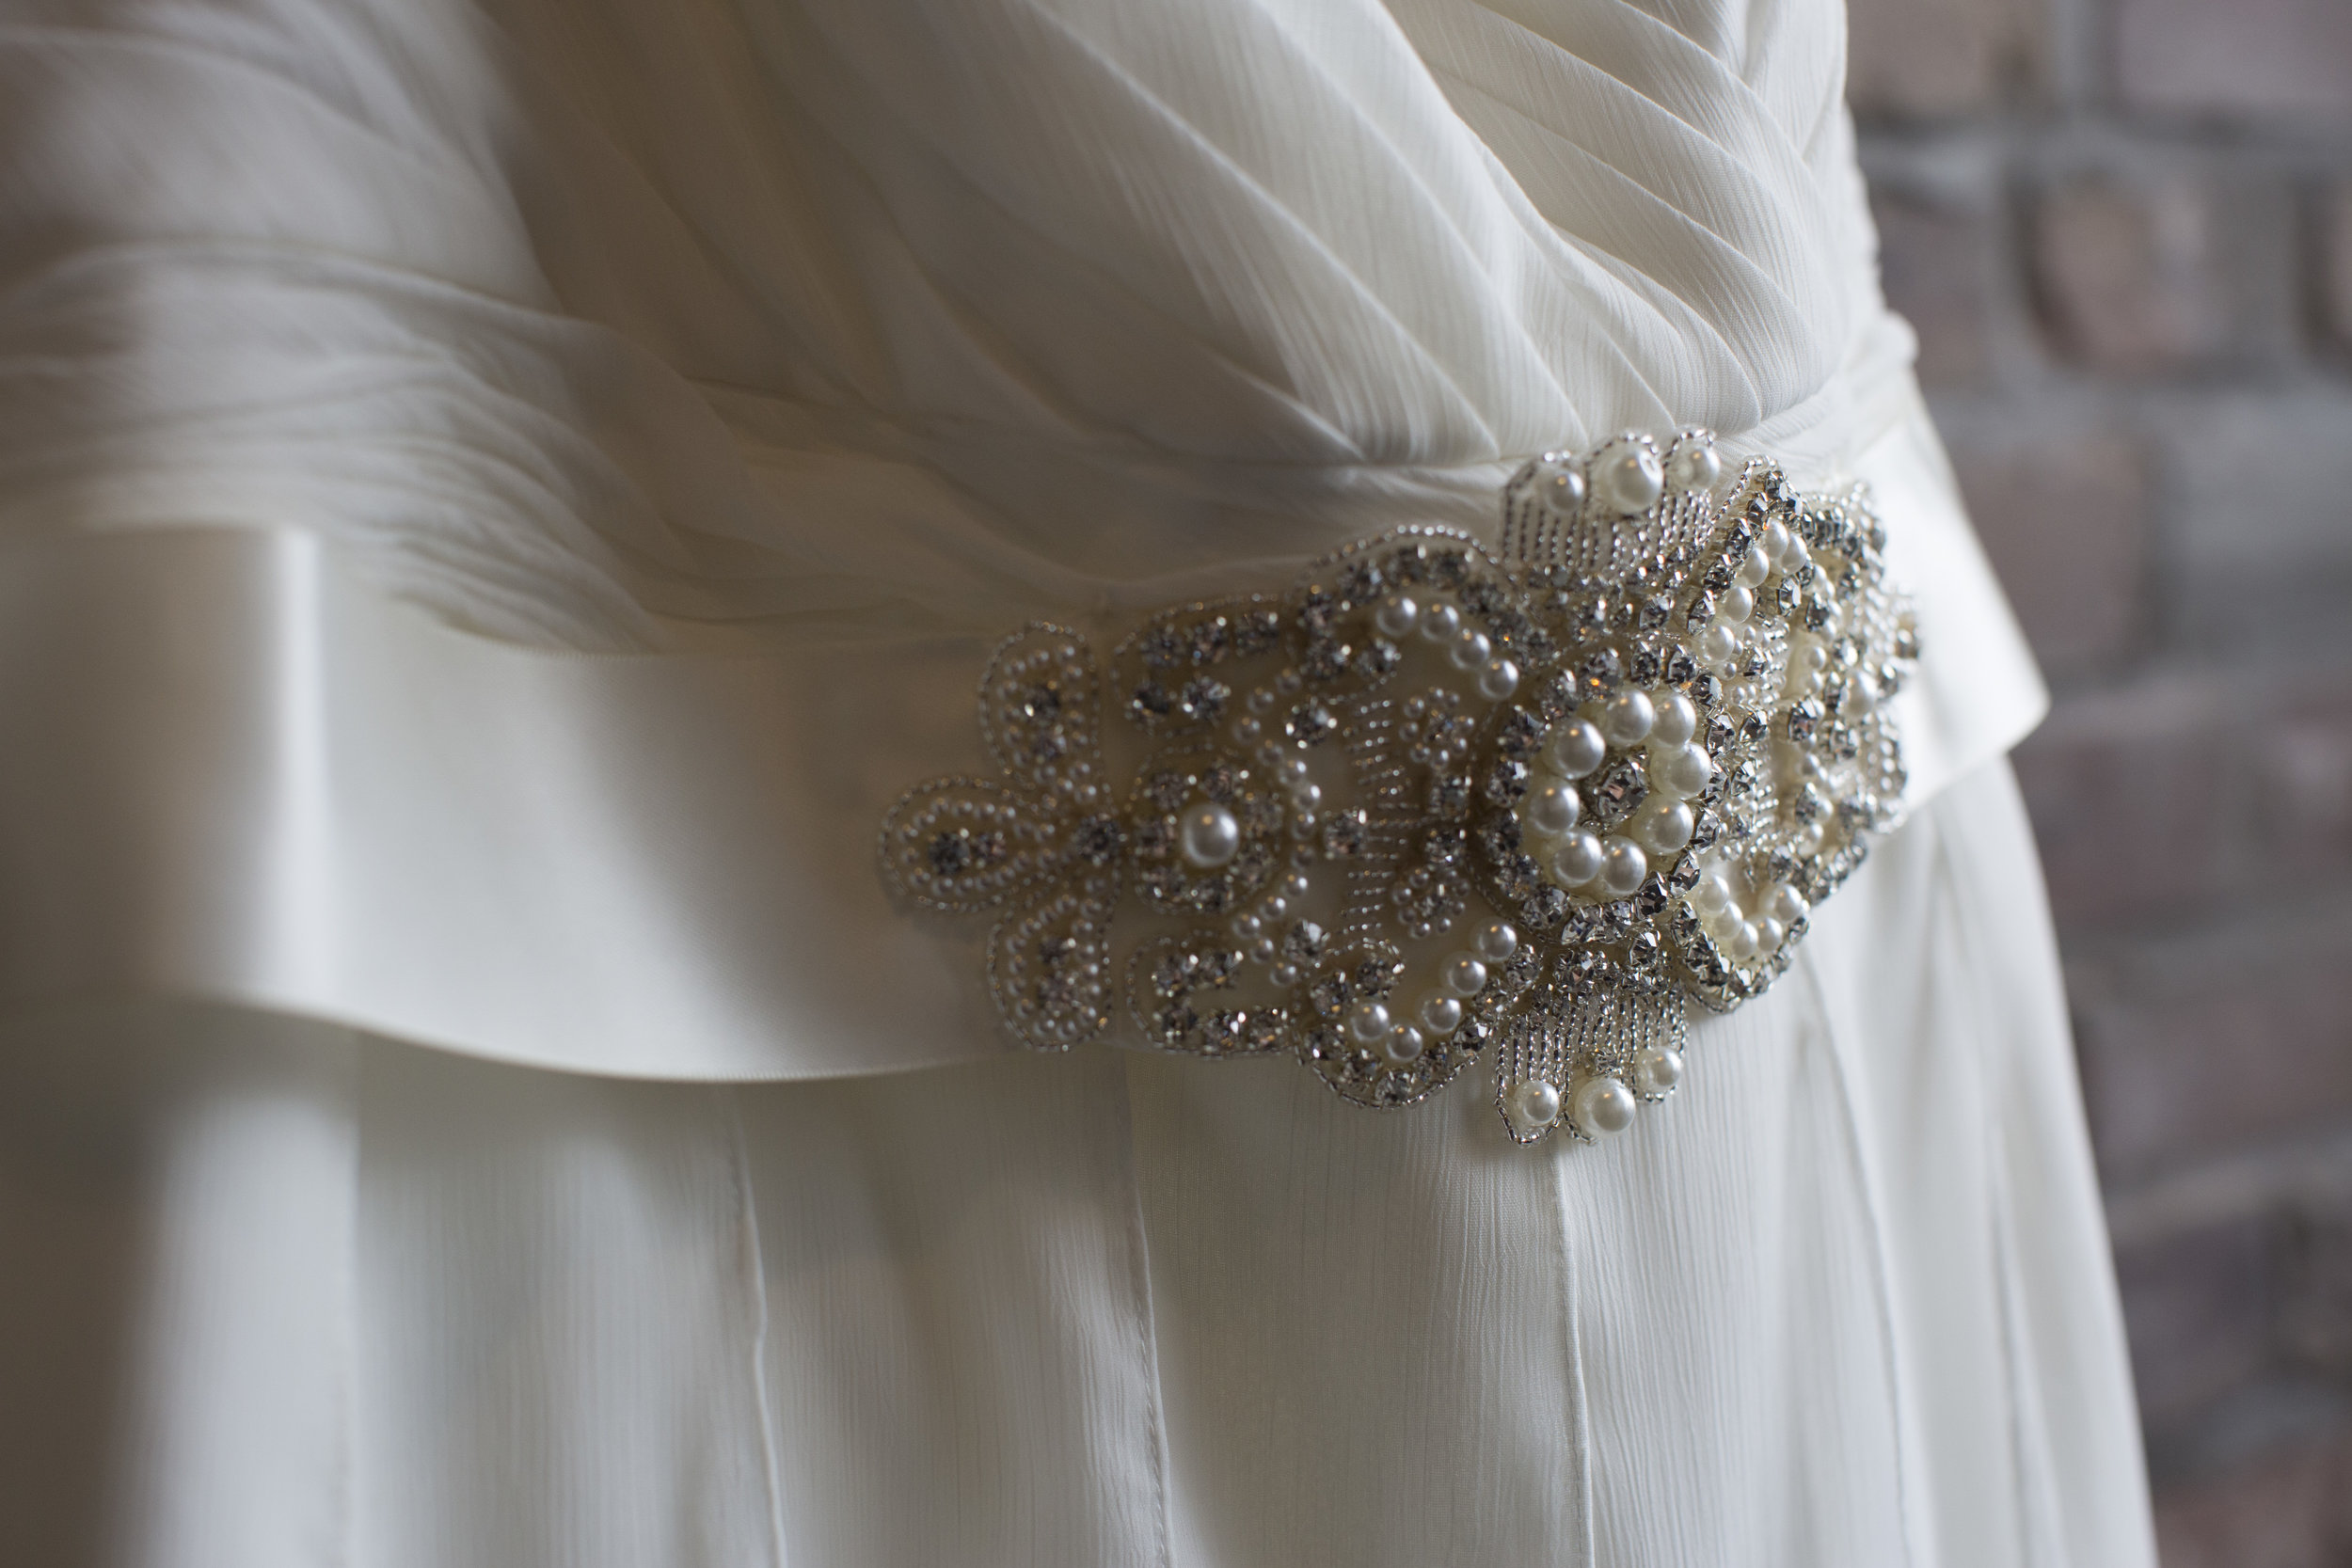 Carey added a touch of pearls & beads to her dreamy dress!